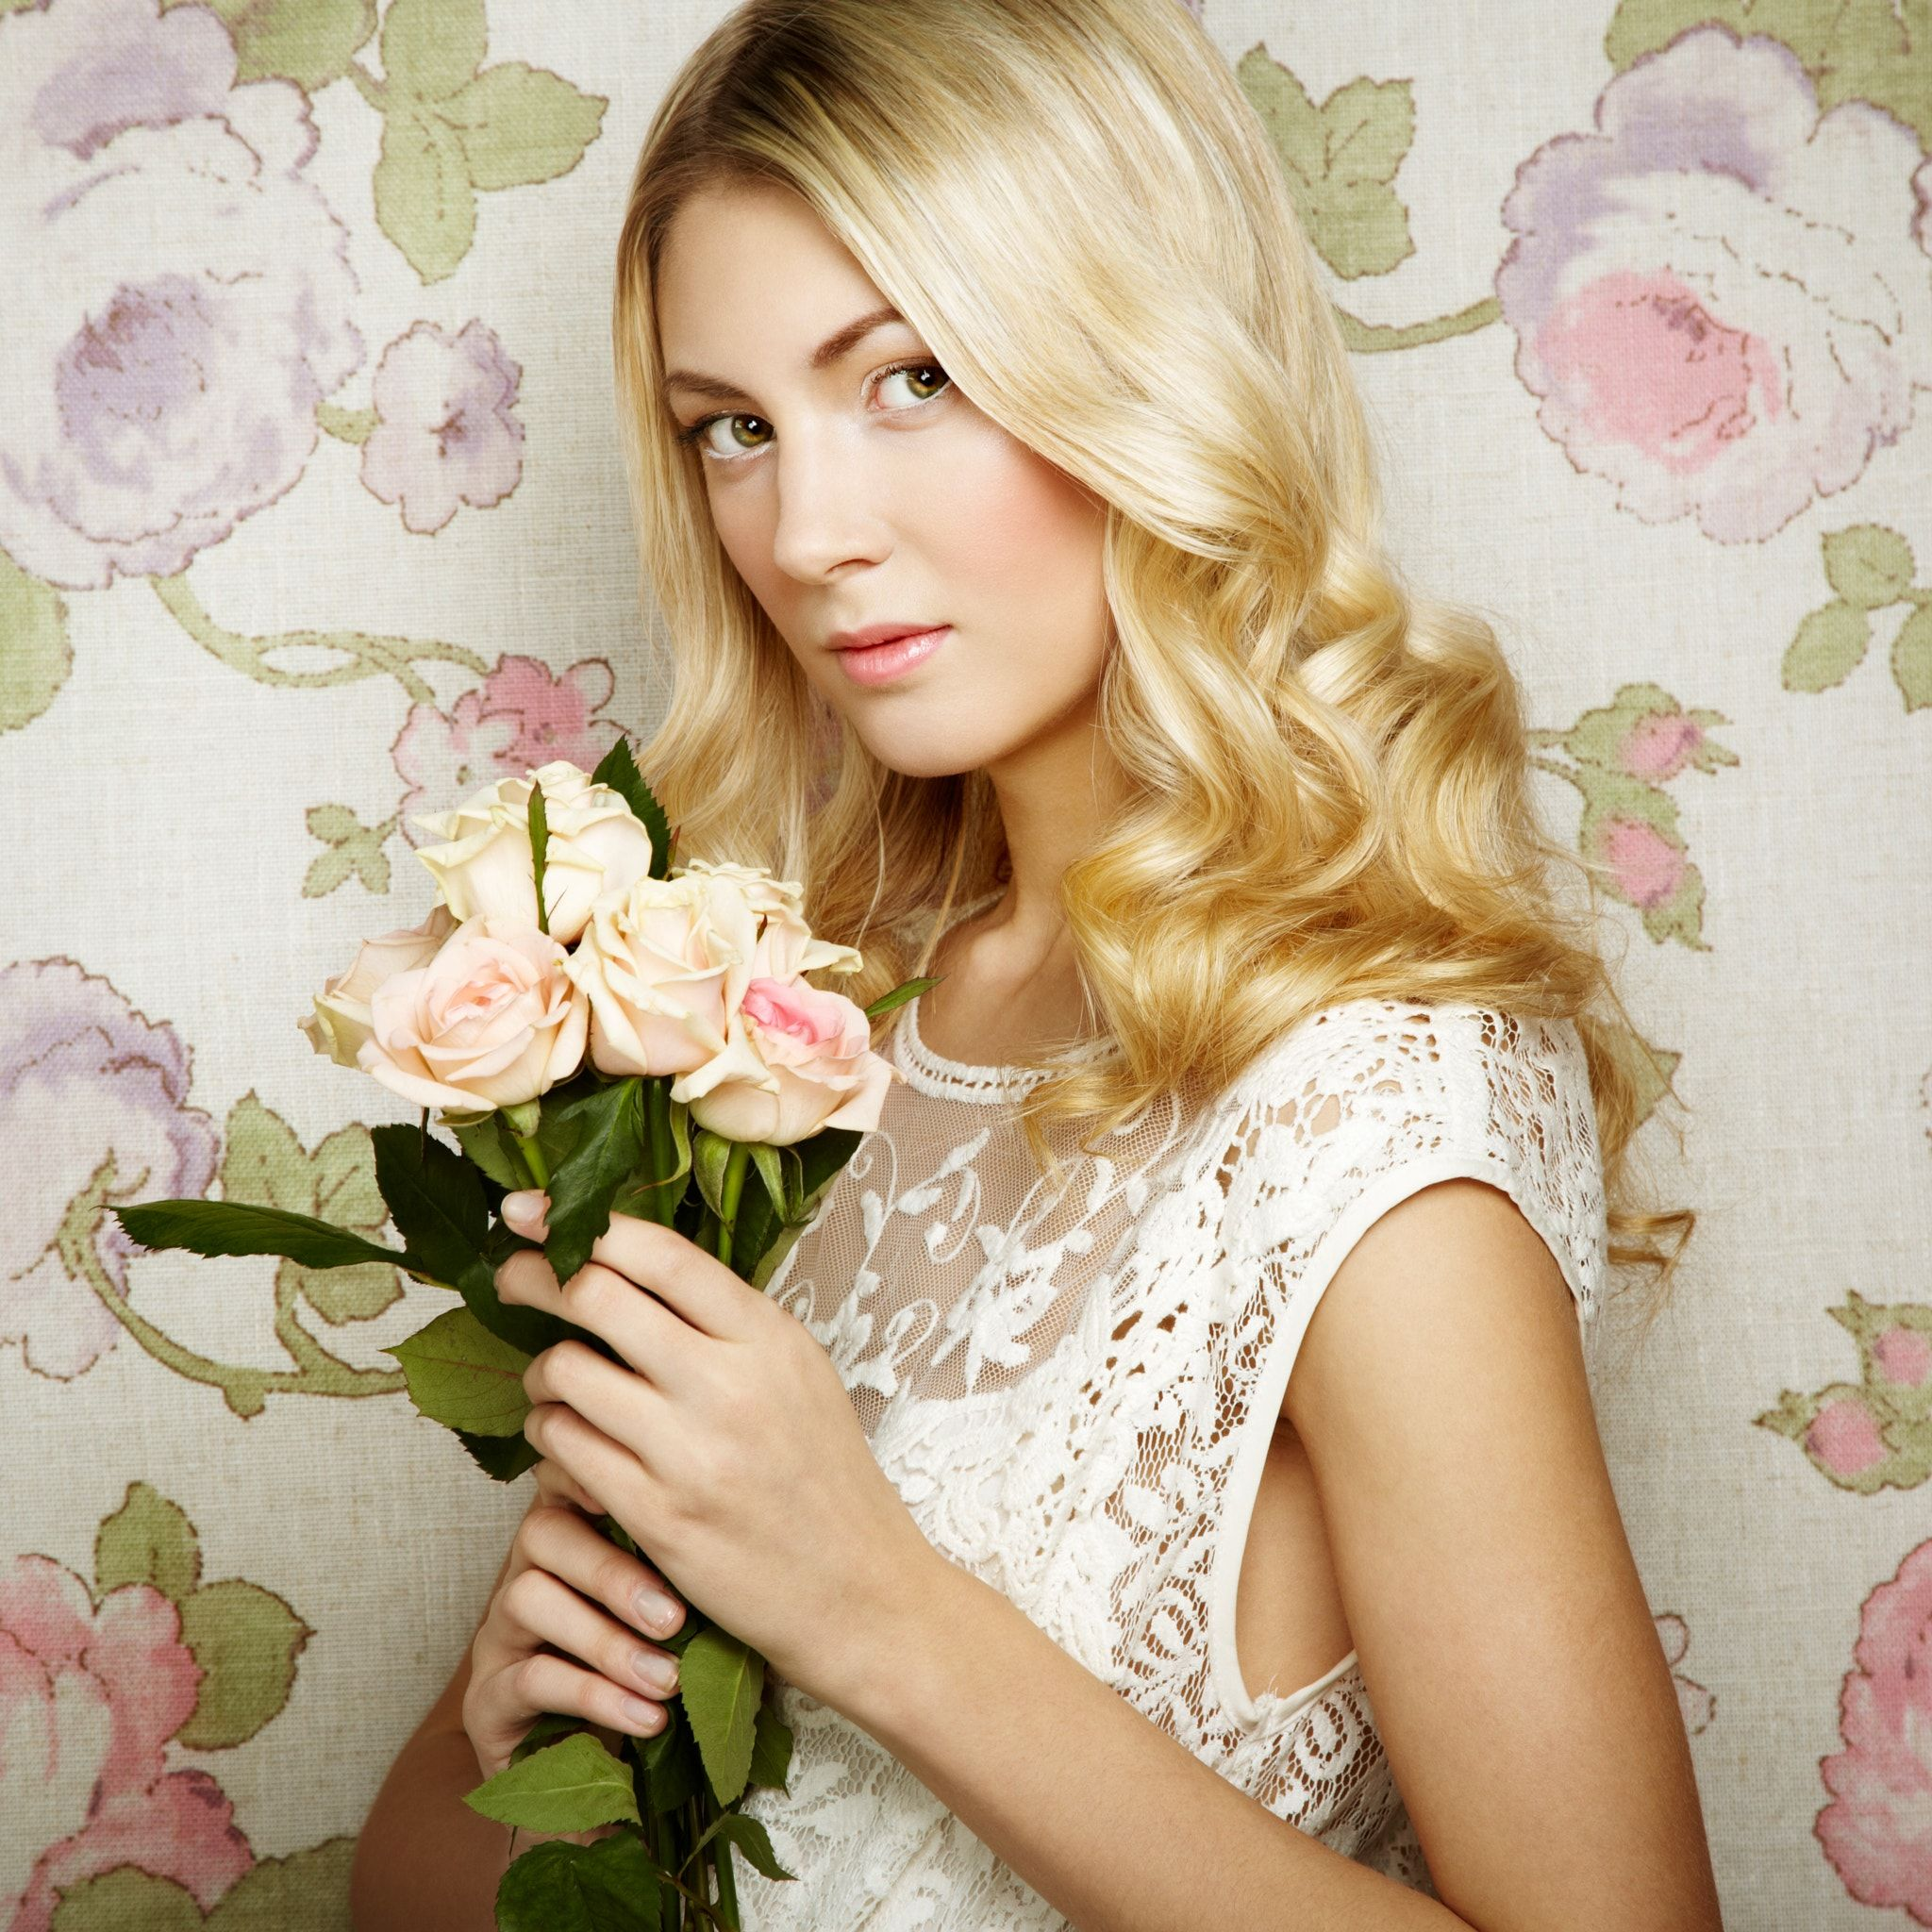 Portrait of a beautiful blonde woman with flowers portrait of a portrait of a beautiful blonde woman with flowers portrait of a beautiful blonde woman with flowers fashion photo izmirmasajfo